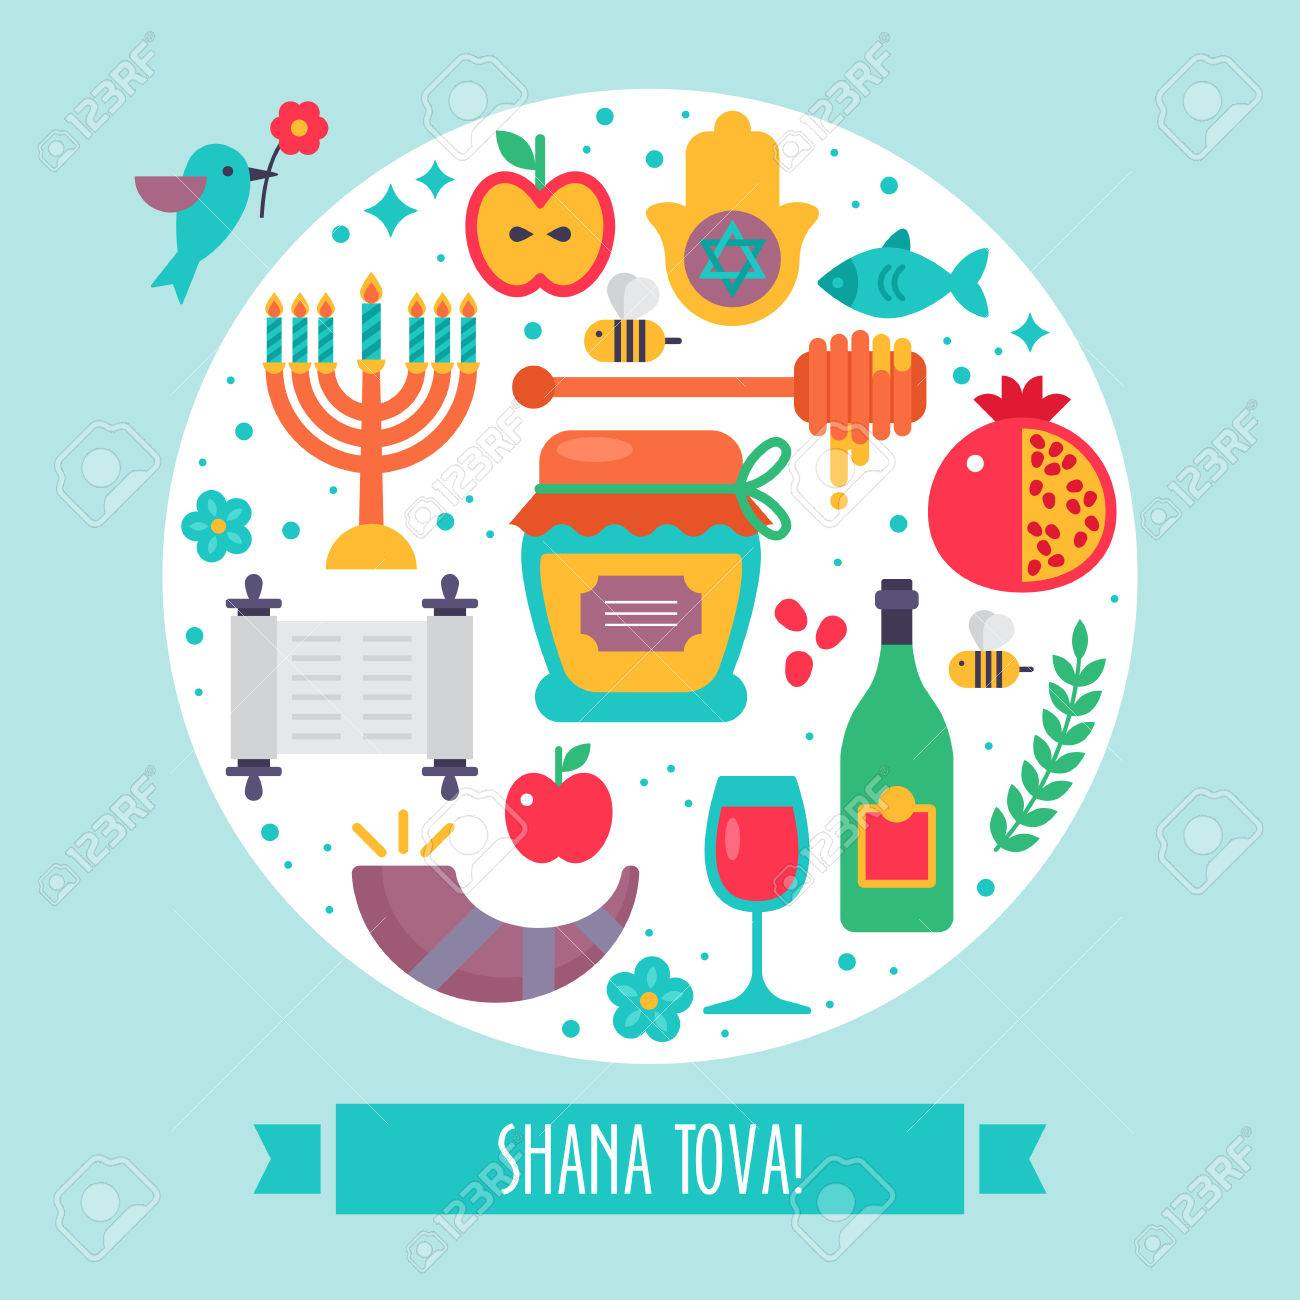 Rosh hashanah jewish new year flat modern round greeting design rosh hashanah jewish new year flat modern round greeting design stock vector 63372405 kristyandbryce Choice Image